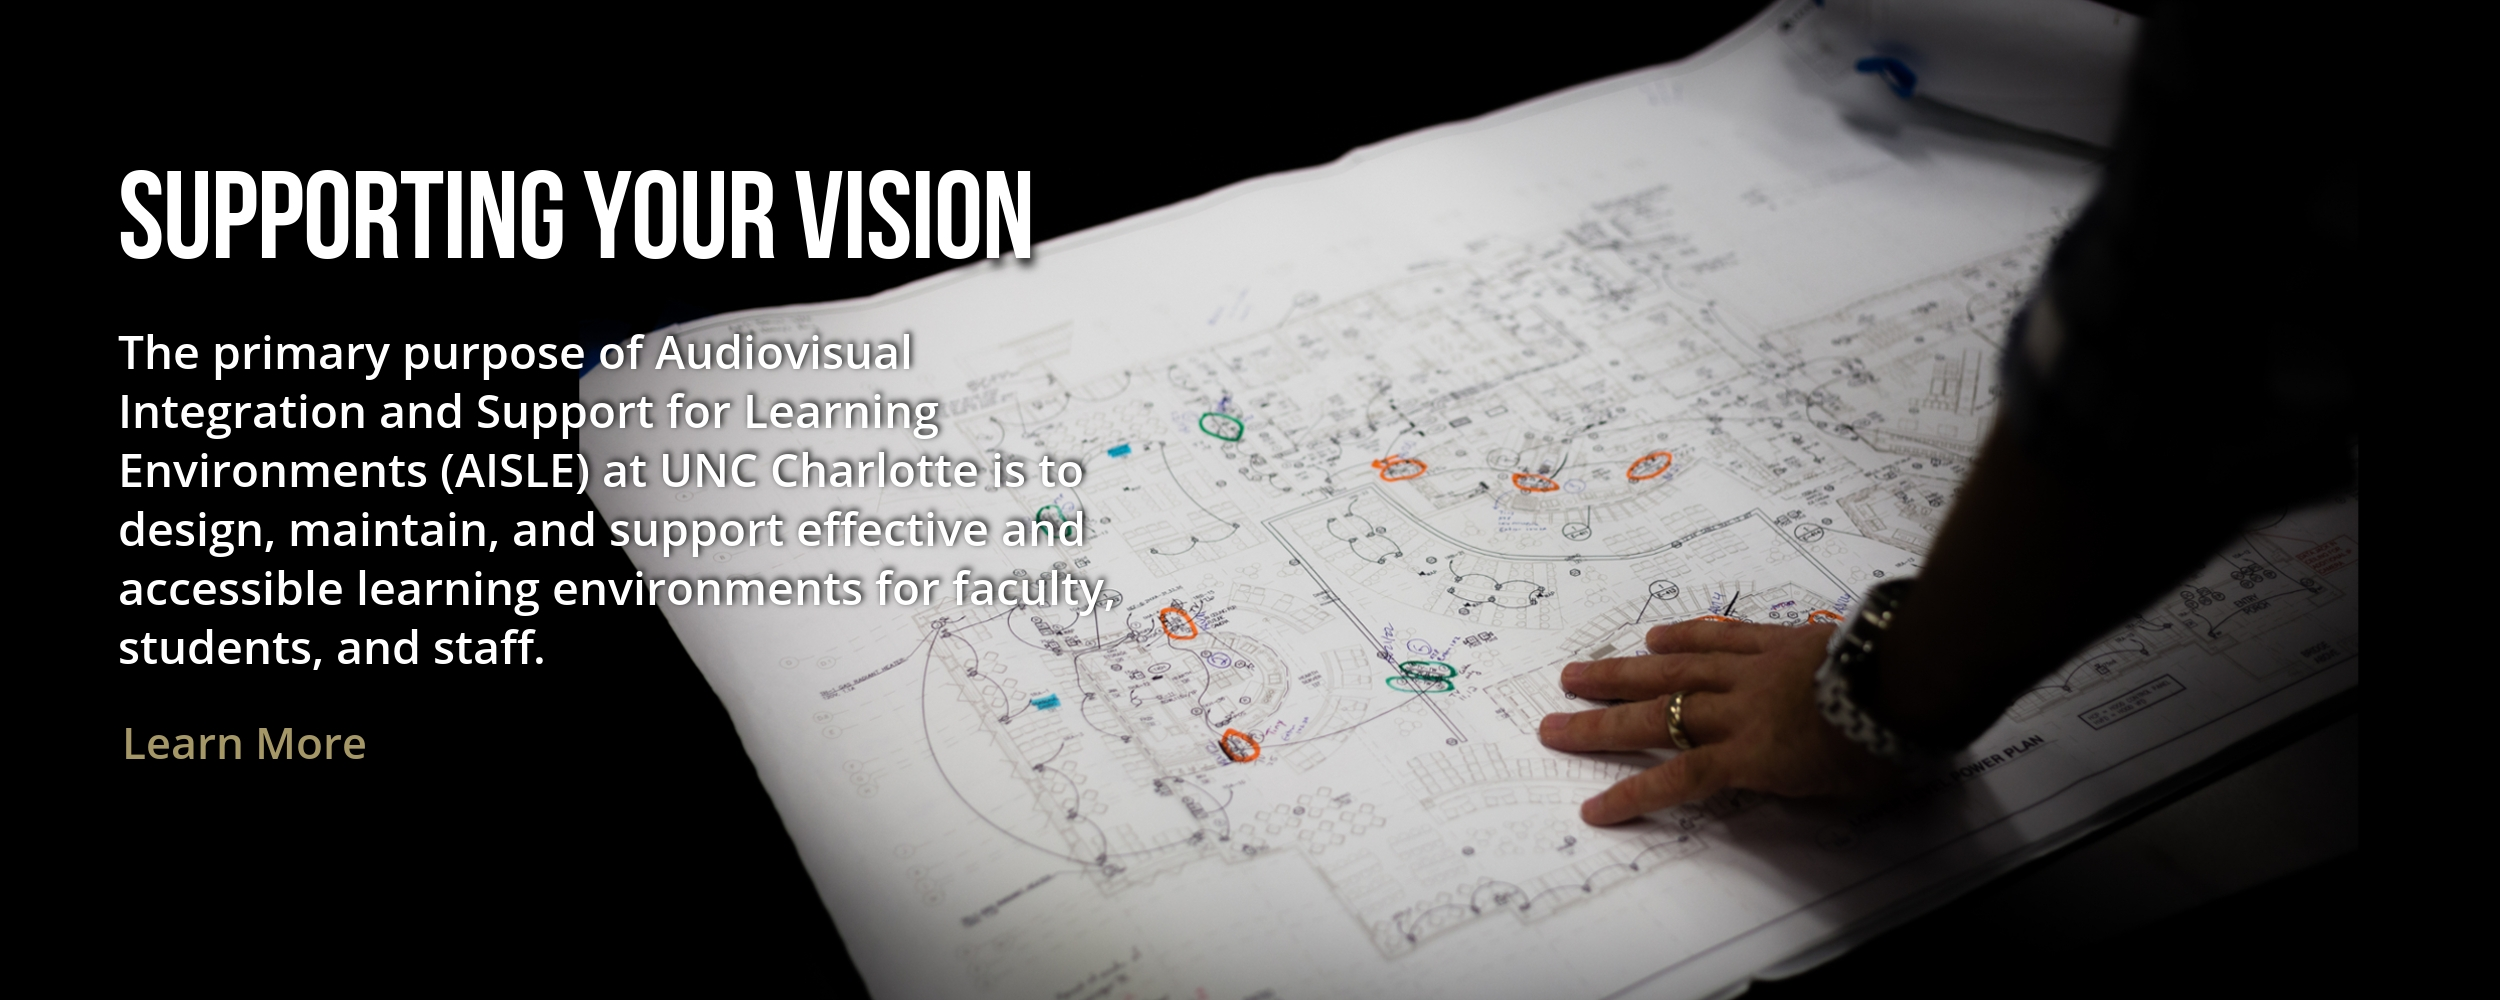 Supporting Your Vision